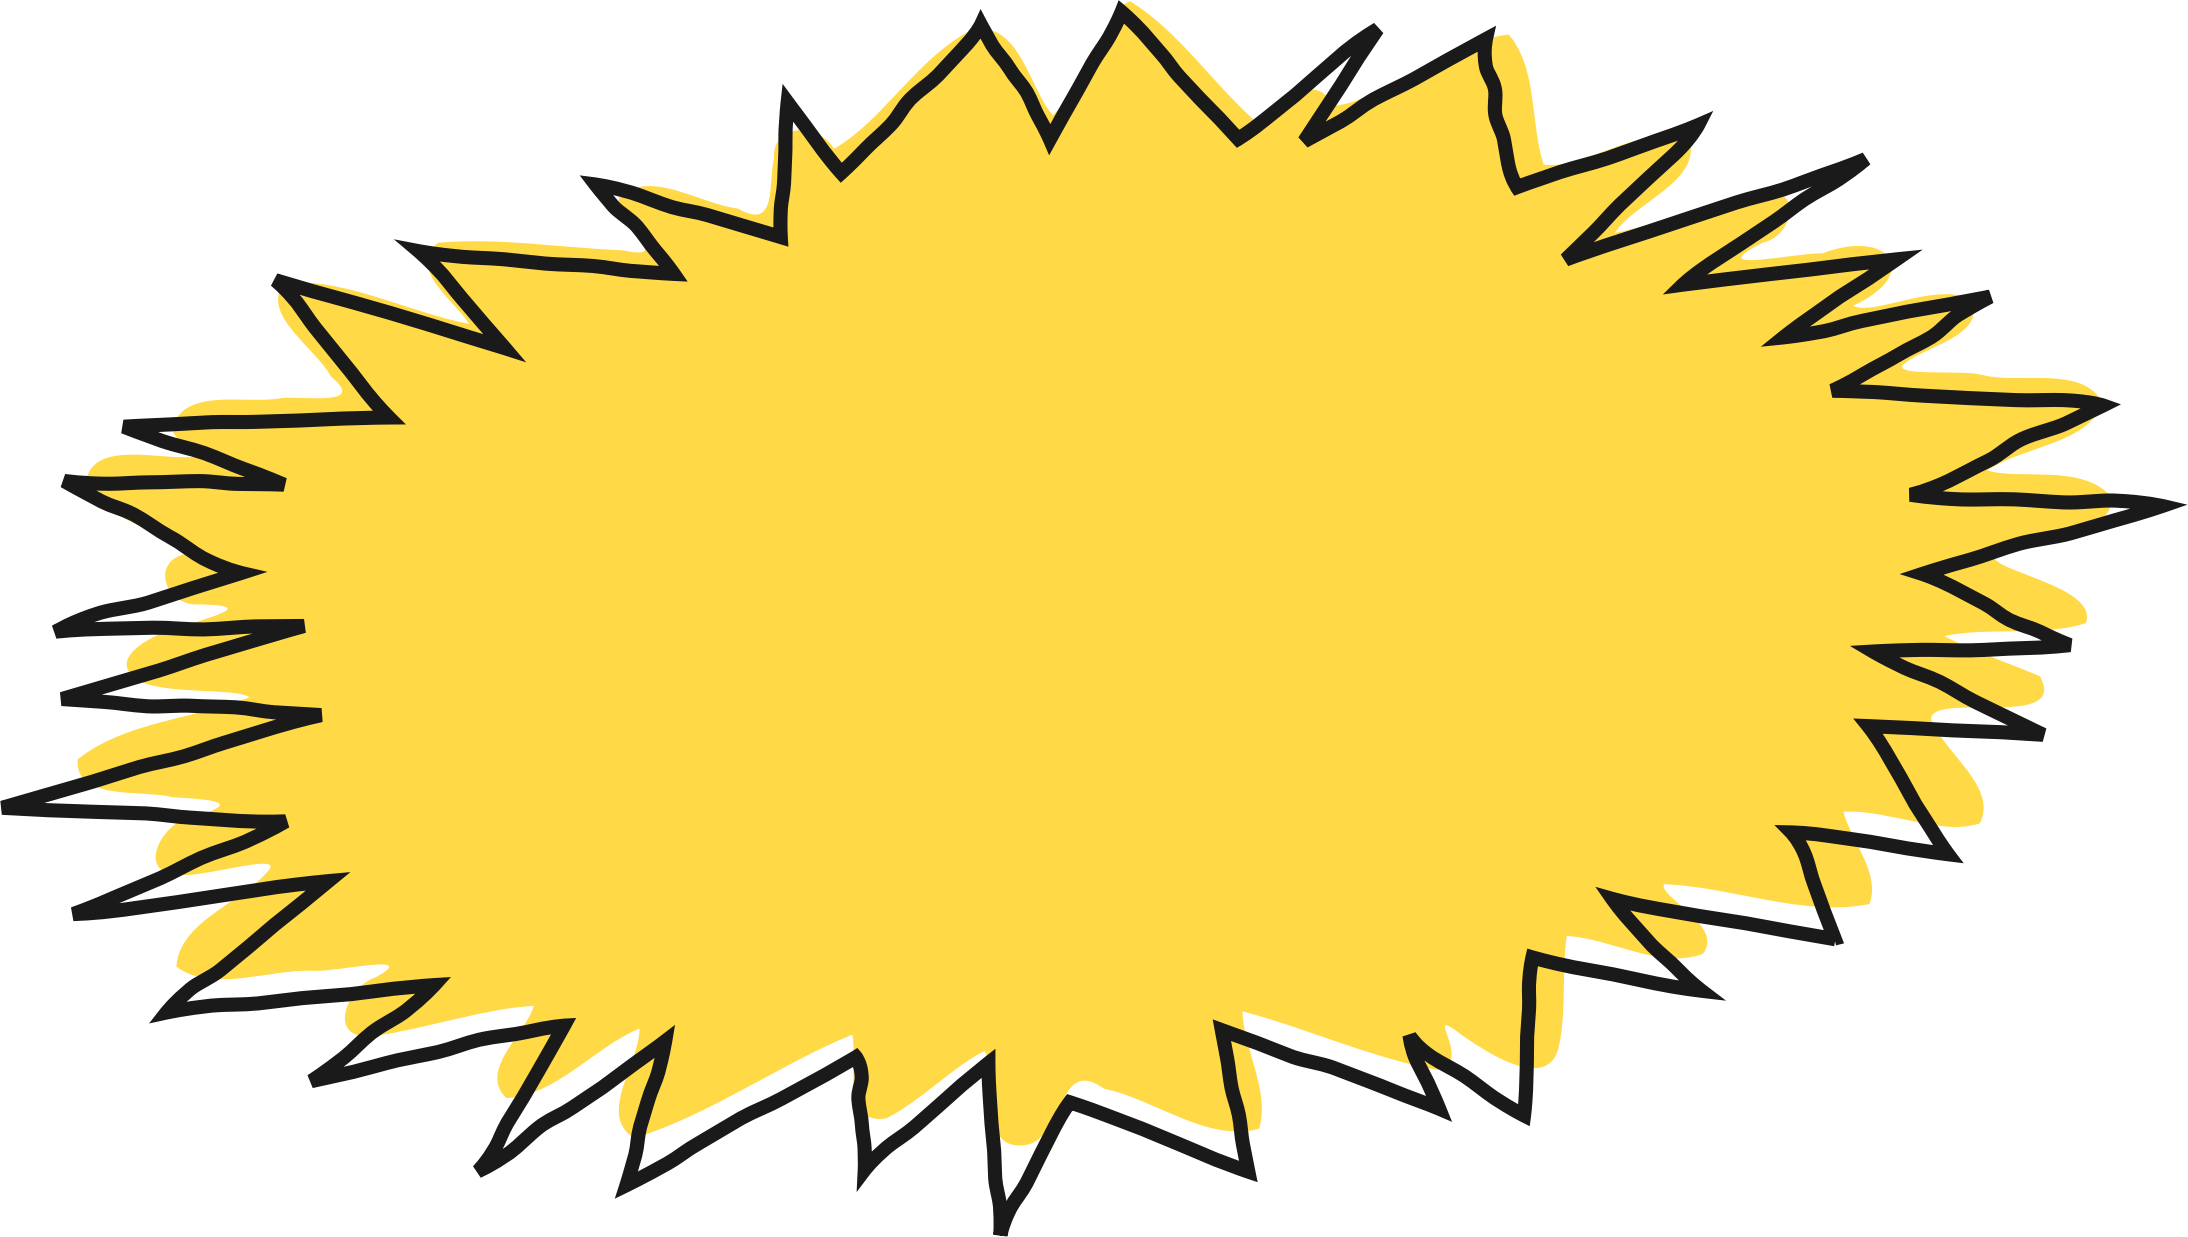 Starburst graphic png. Zap icons free and